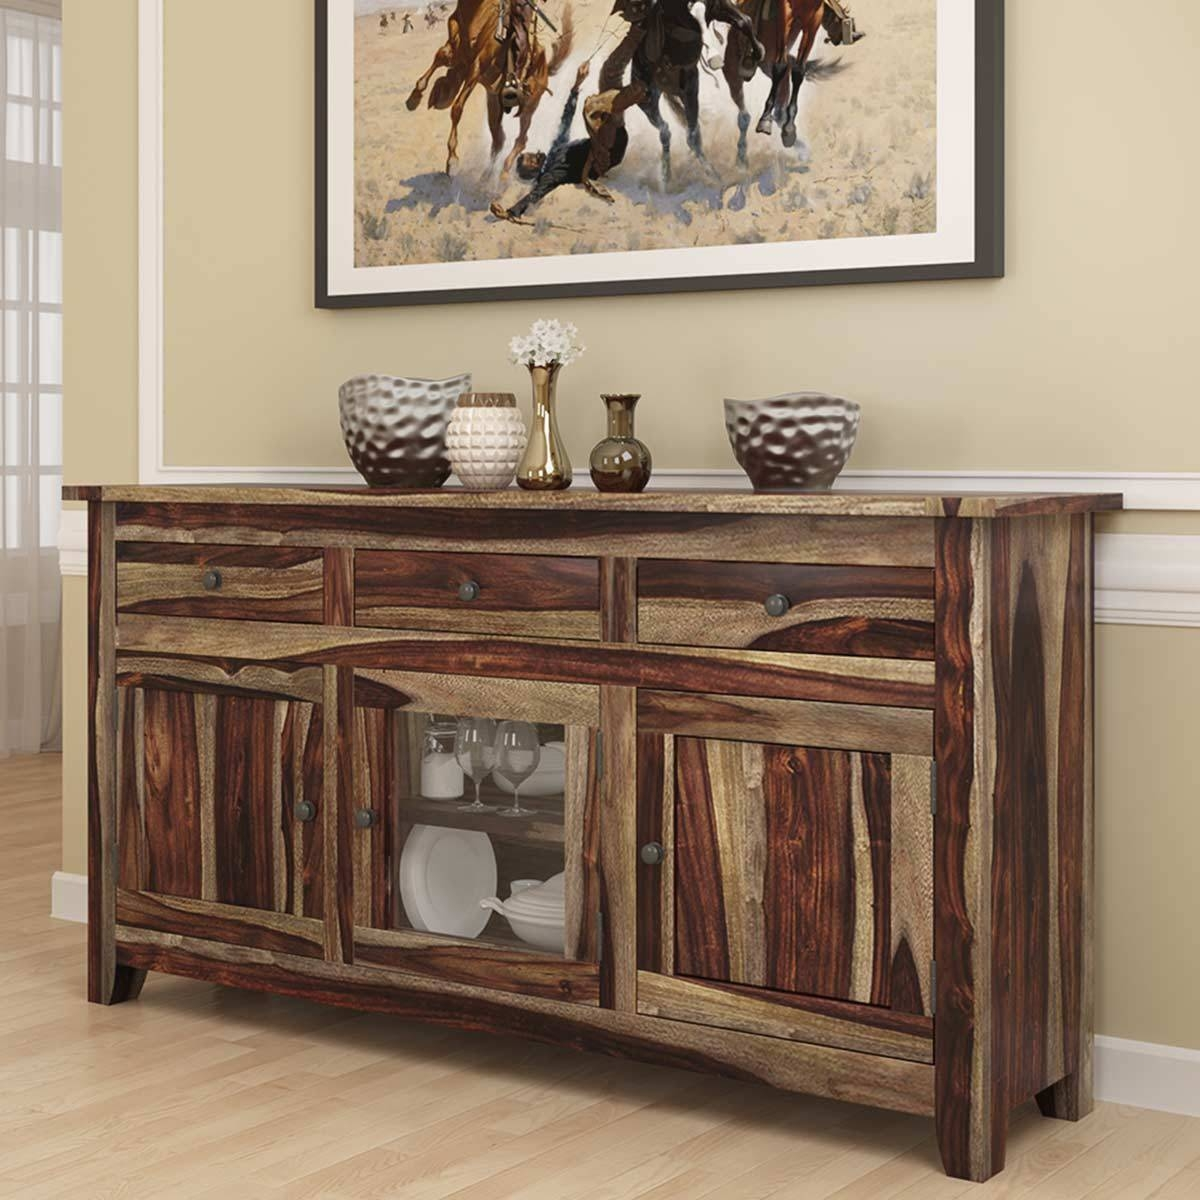 Modern Rustic Solid Wood Glass Door 3 Drawer Sideboard Cabinet Throughout Current Sideboards With Glass Doors And Drawers (#5 of 15)